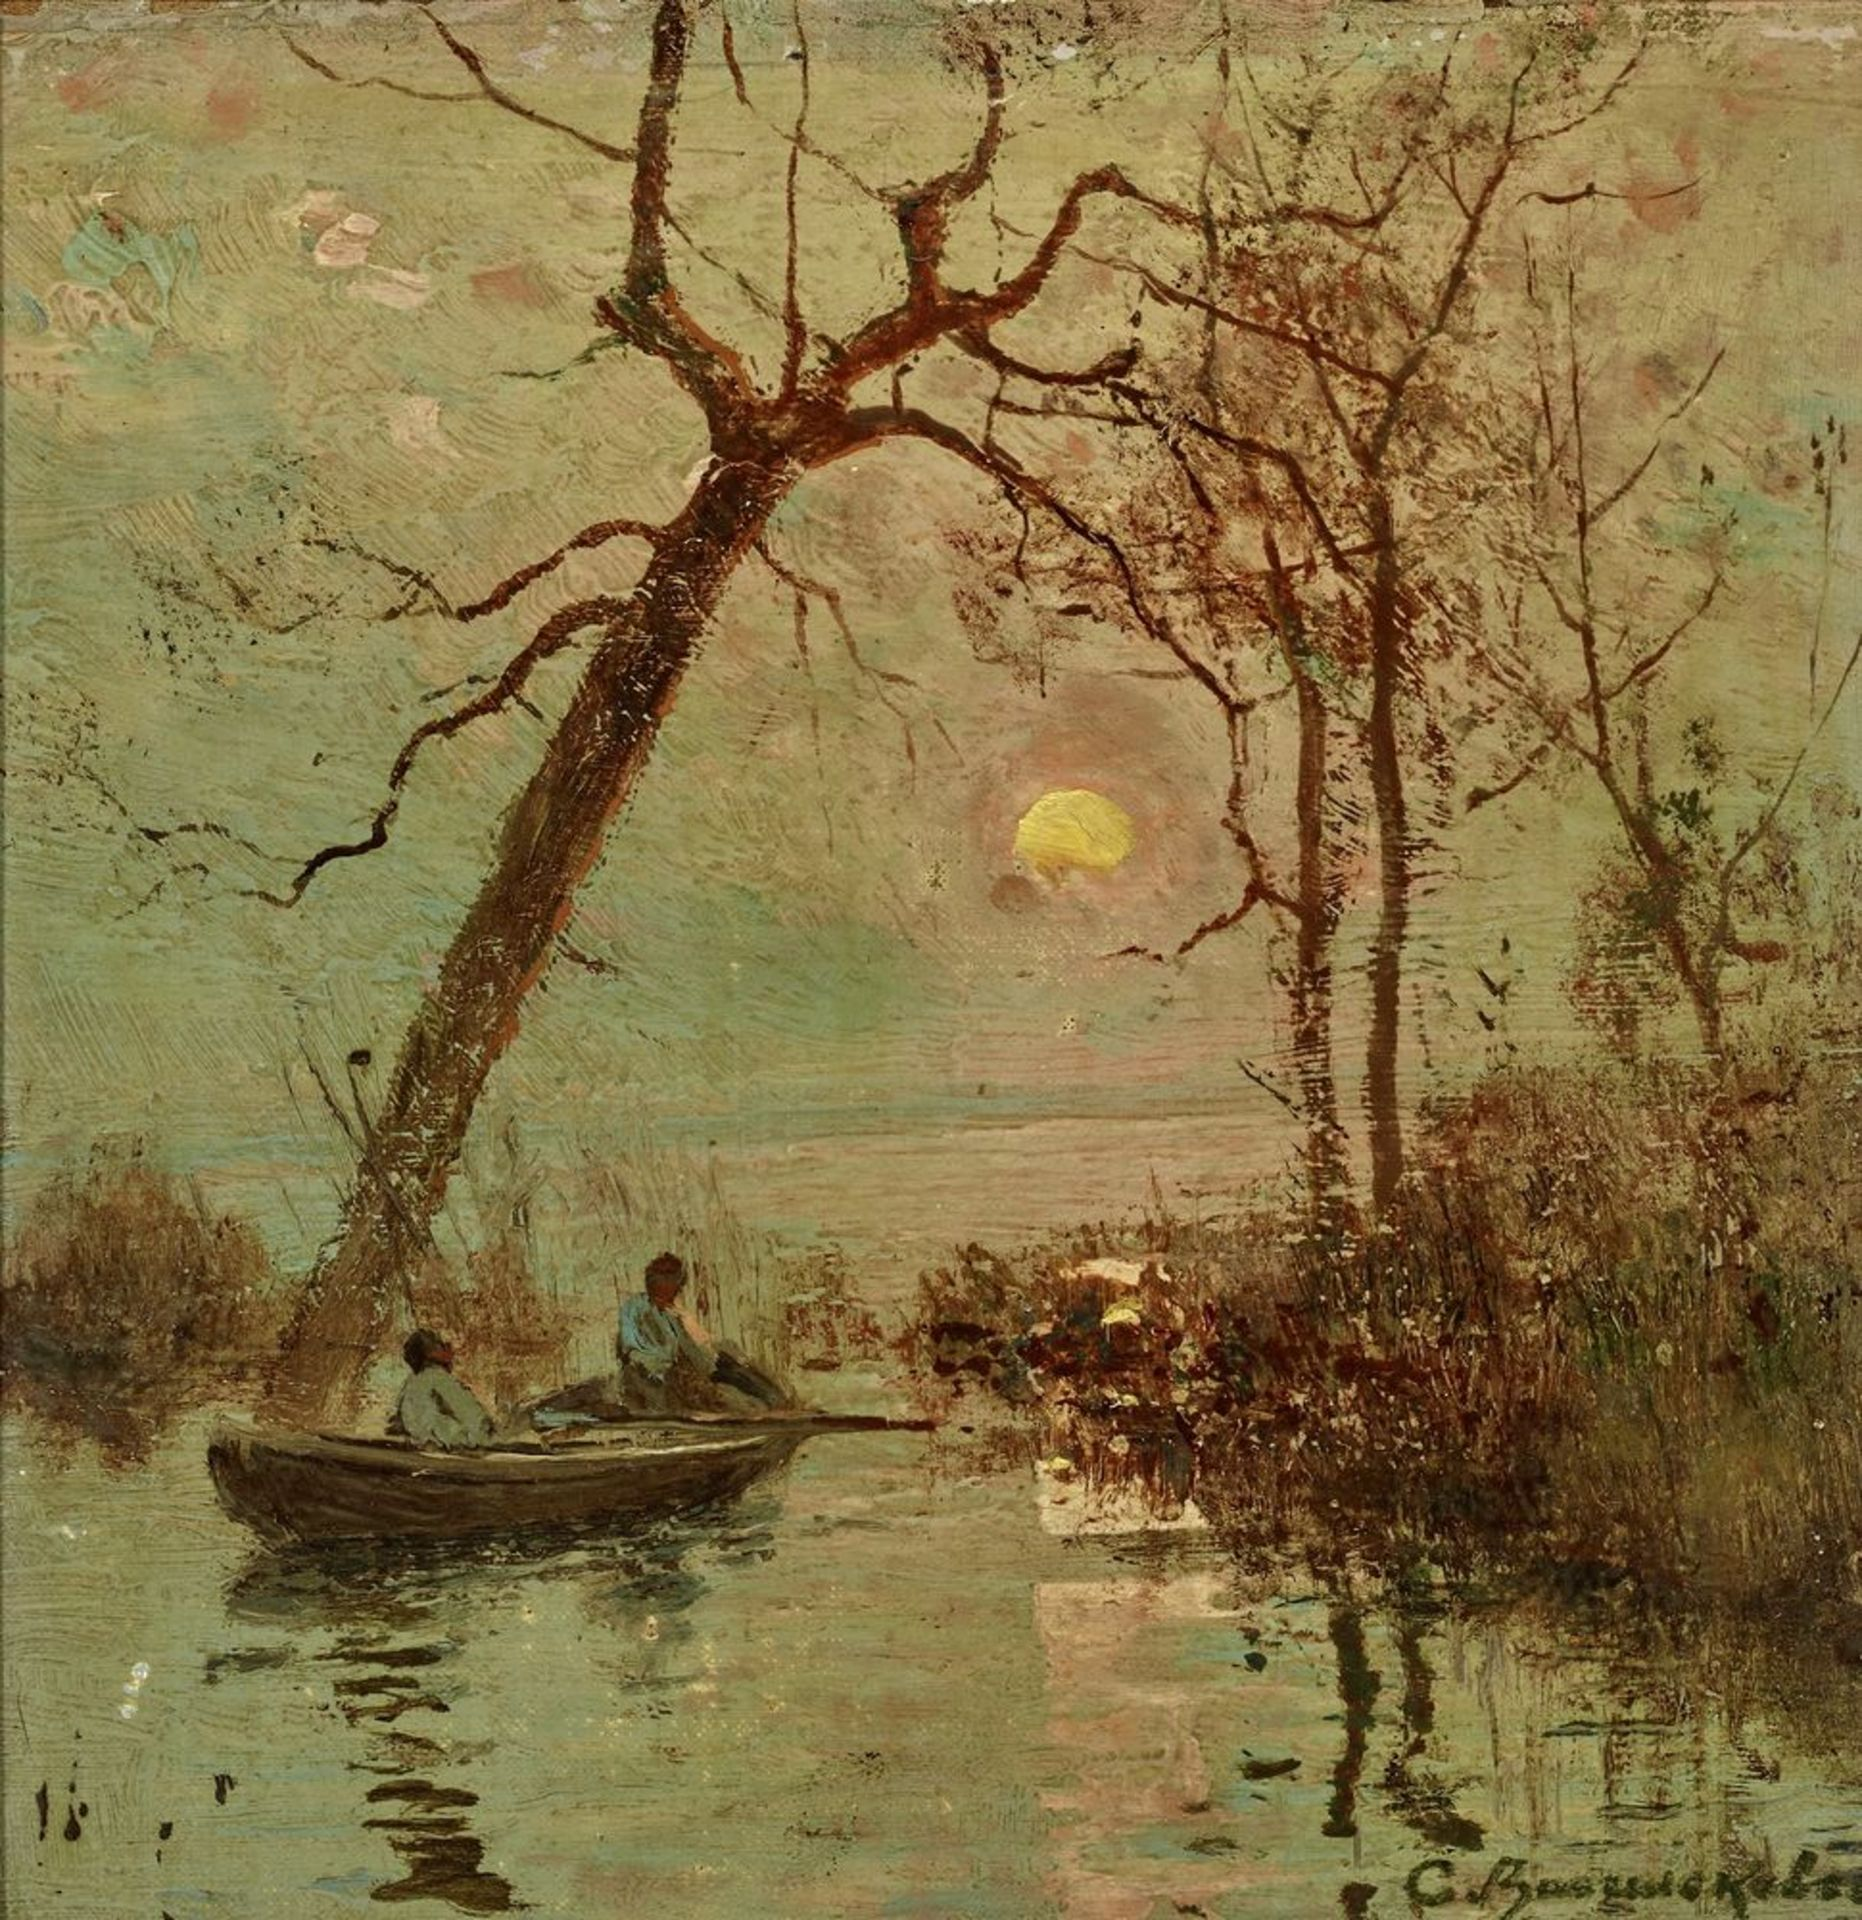 Los 33 - Sergey Ivanovich Vasilkovsky (1854-1917) - Sunset on the Dnieper Signed in Cyrillic [...]